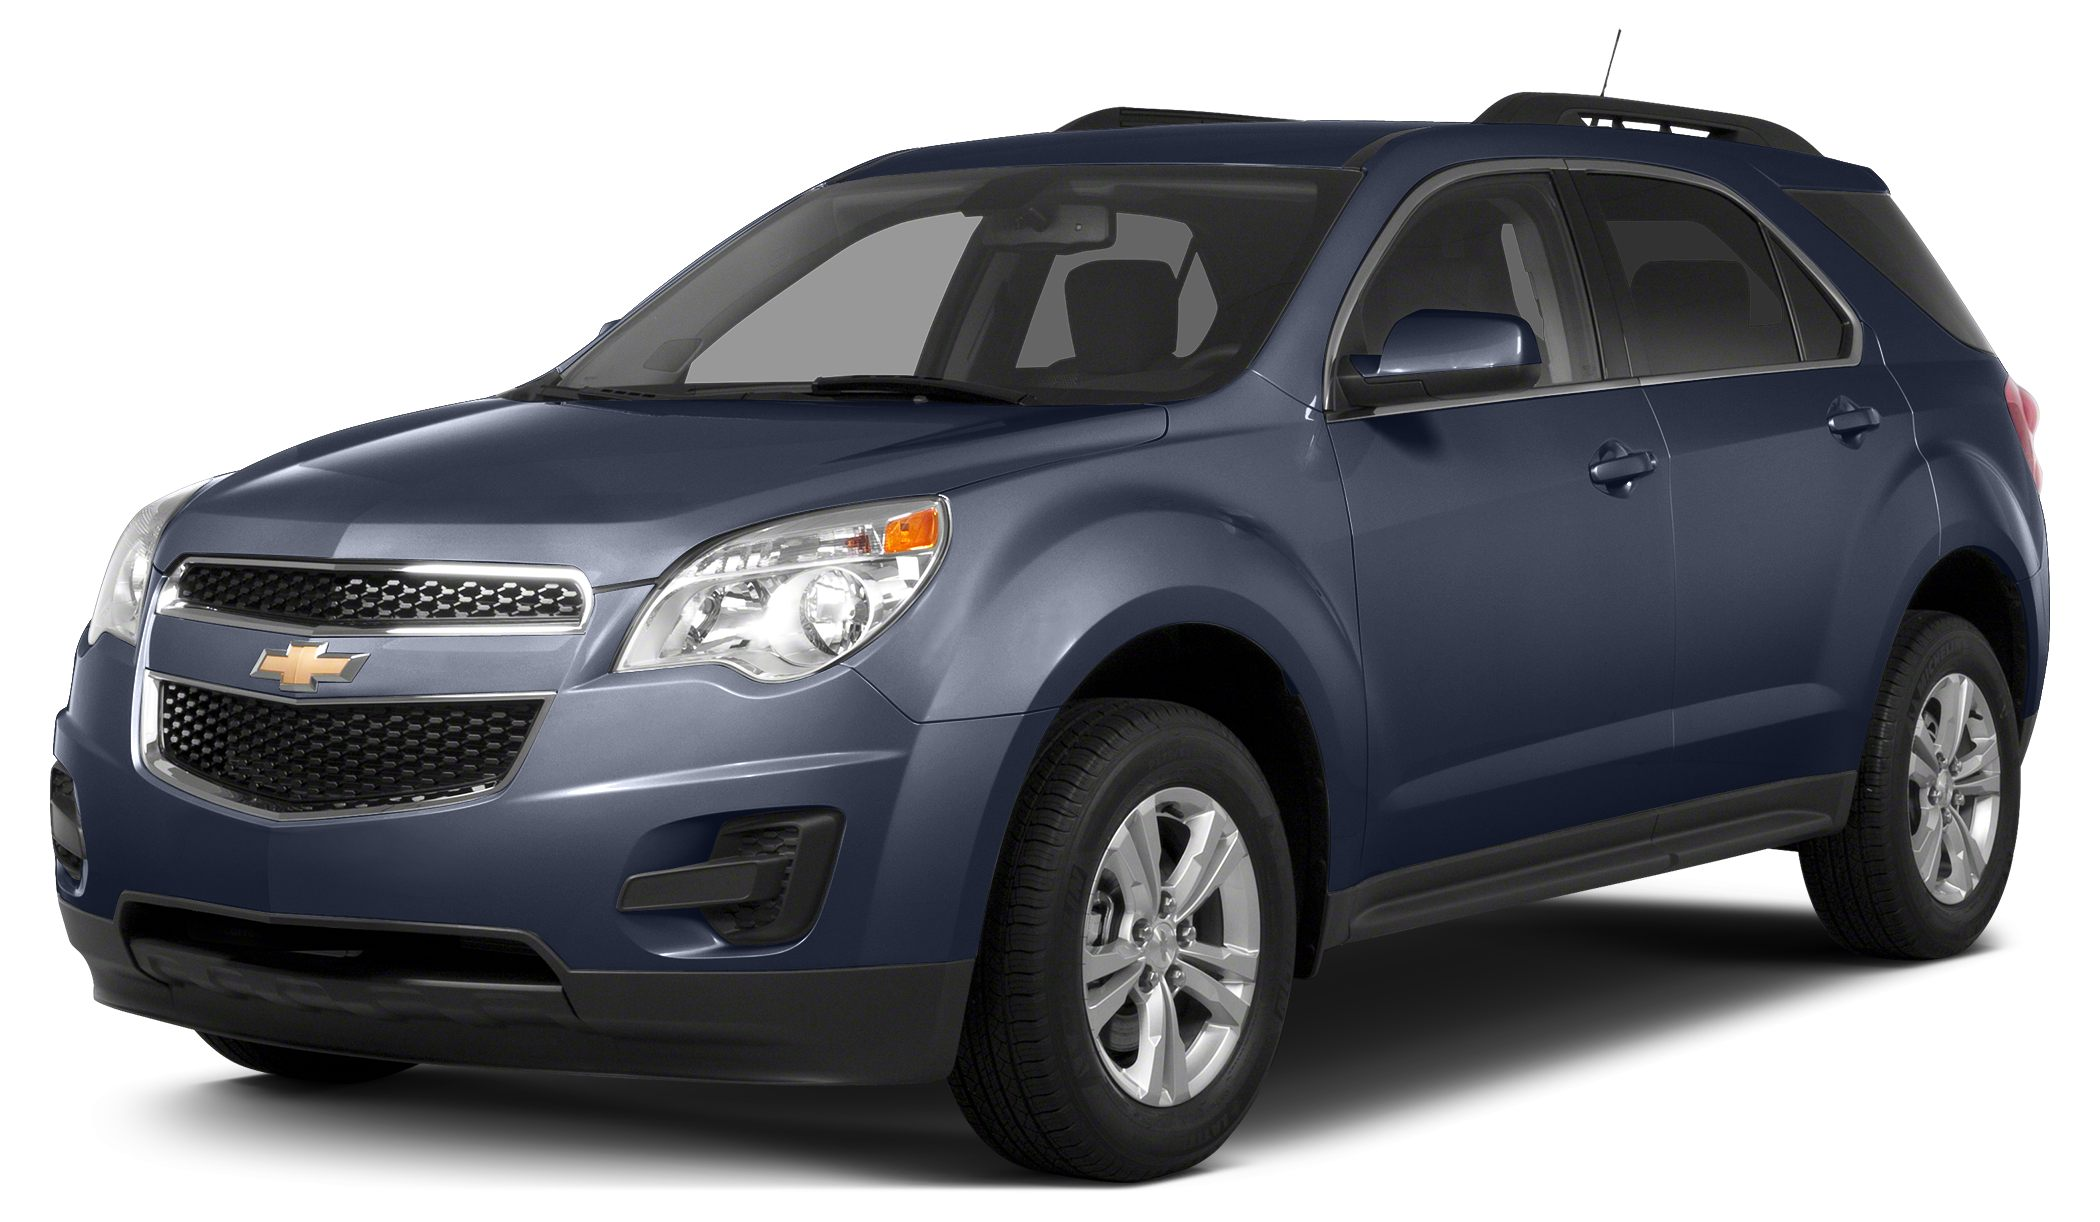 2013 Chevrolet Equinox 1LT One owner pride and joy is yours for the taking Breathing space belong